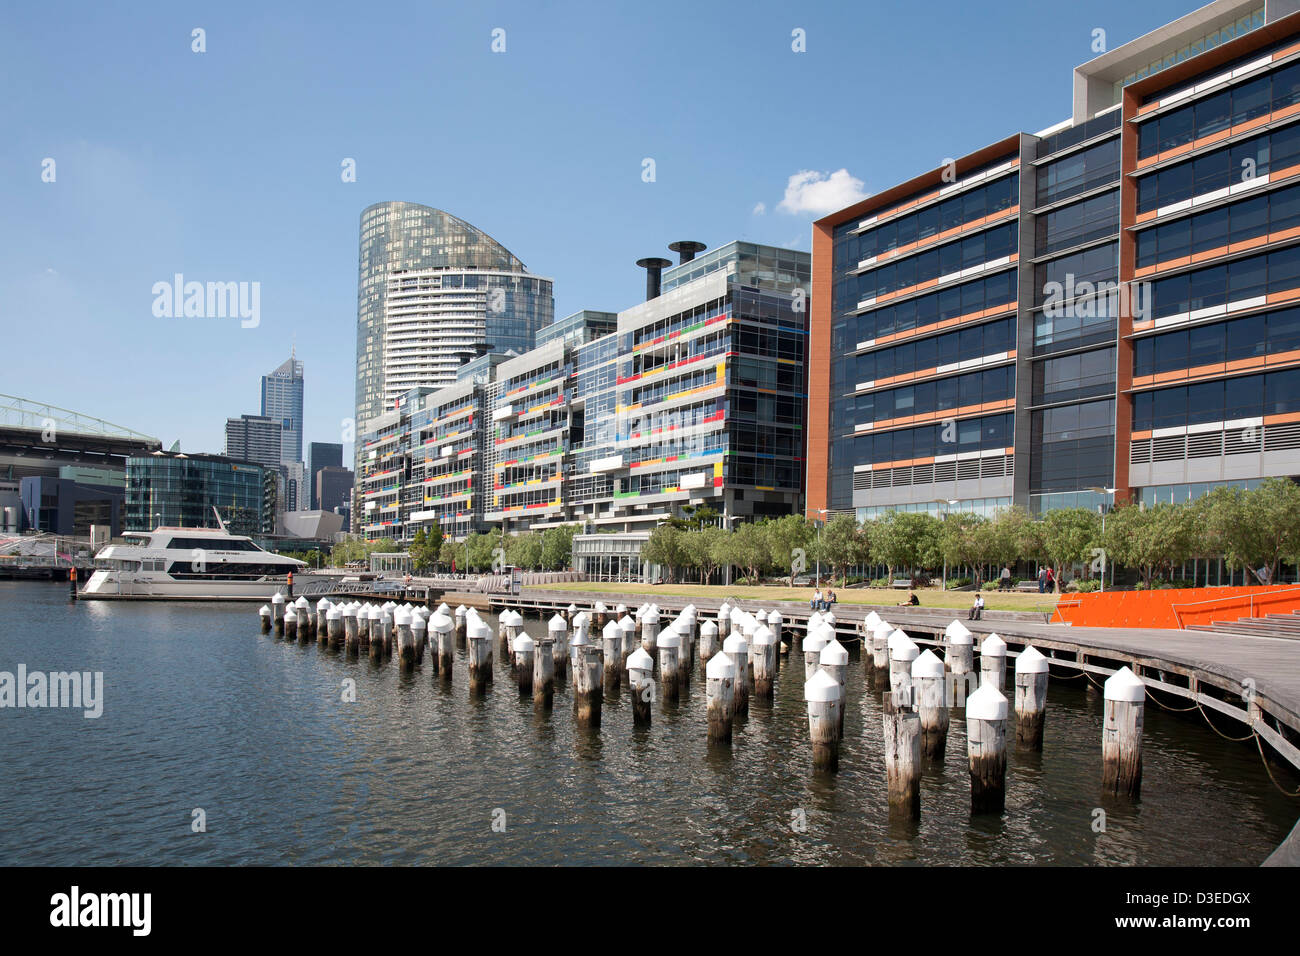 The environmentally friendly National Australia Bank building at Docklands Melbourne Victoria Australia - Stock Image